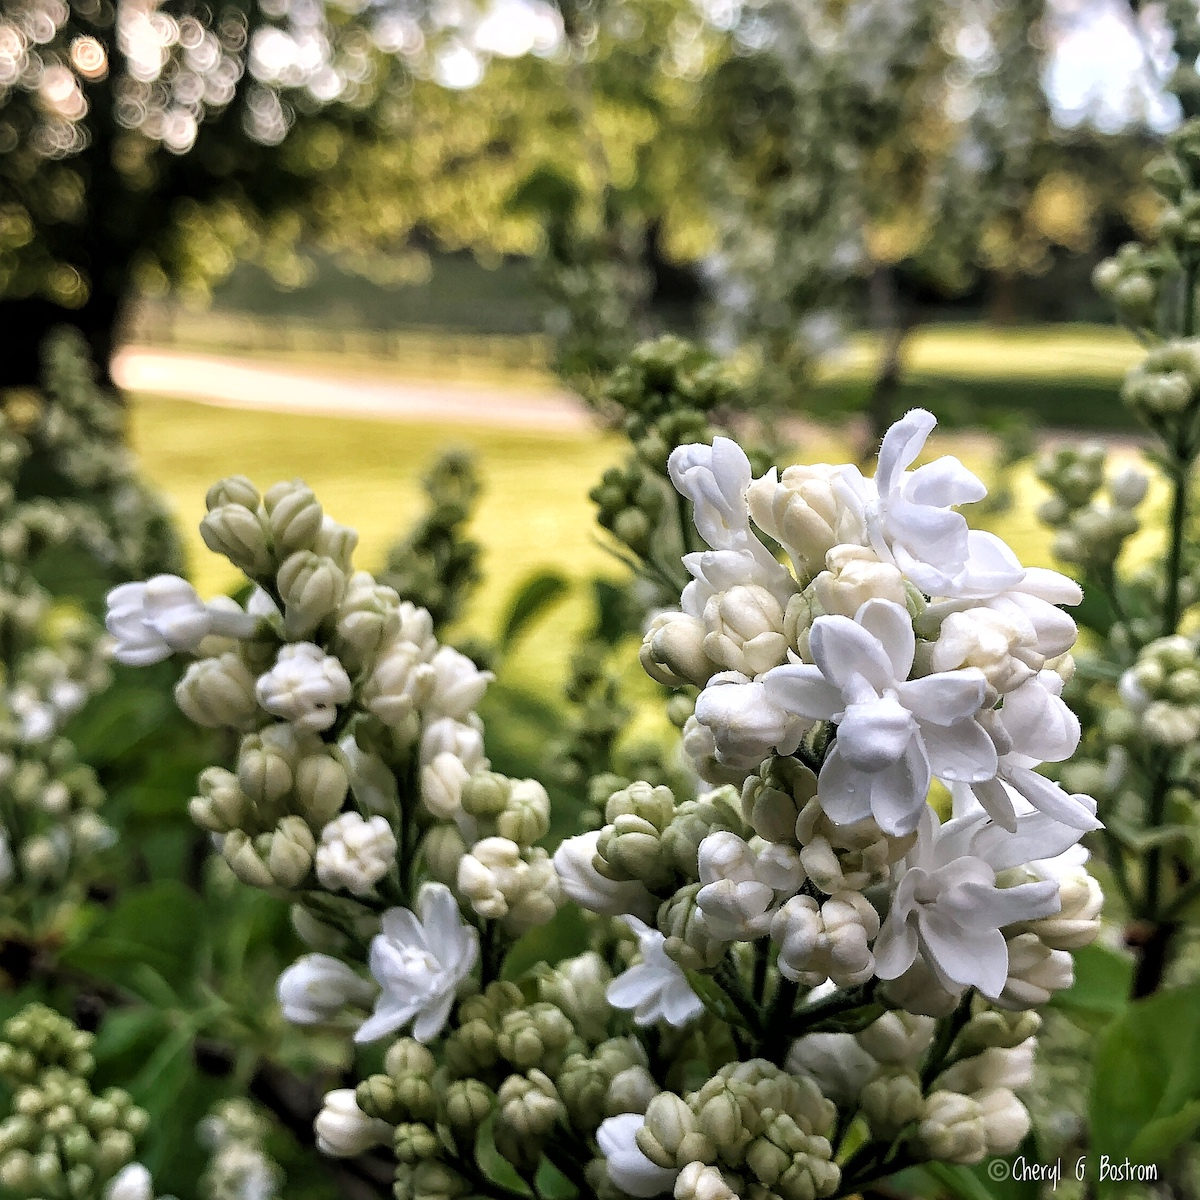 White-lilac-buds-break-into-fragrance